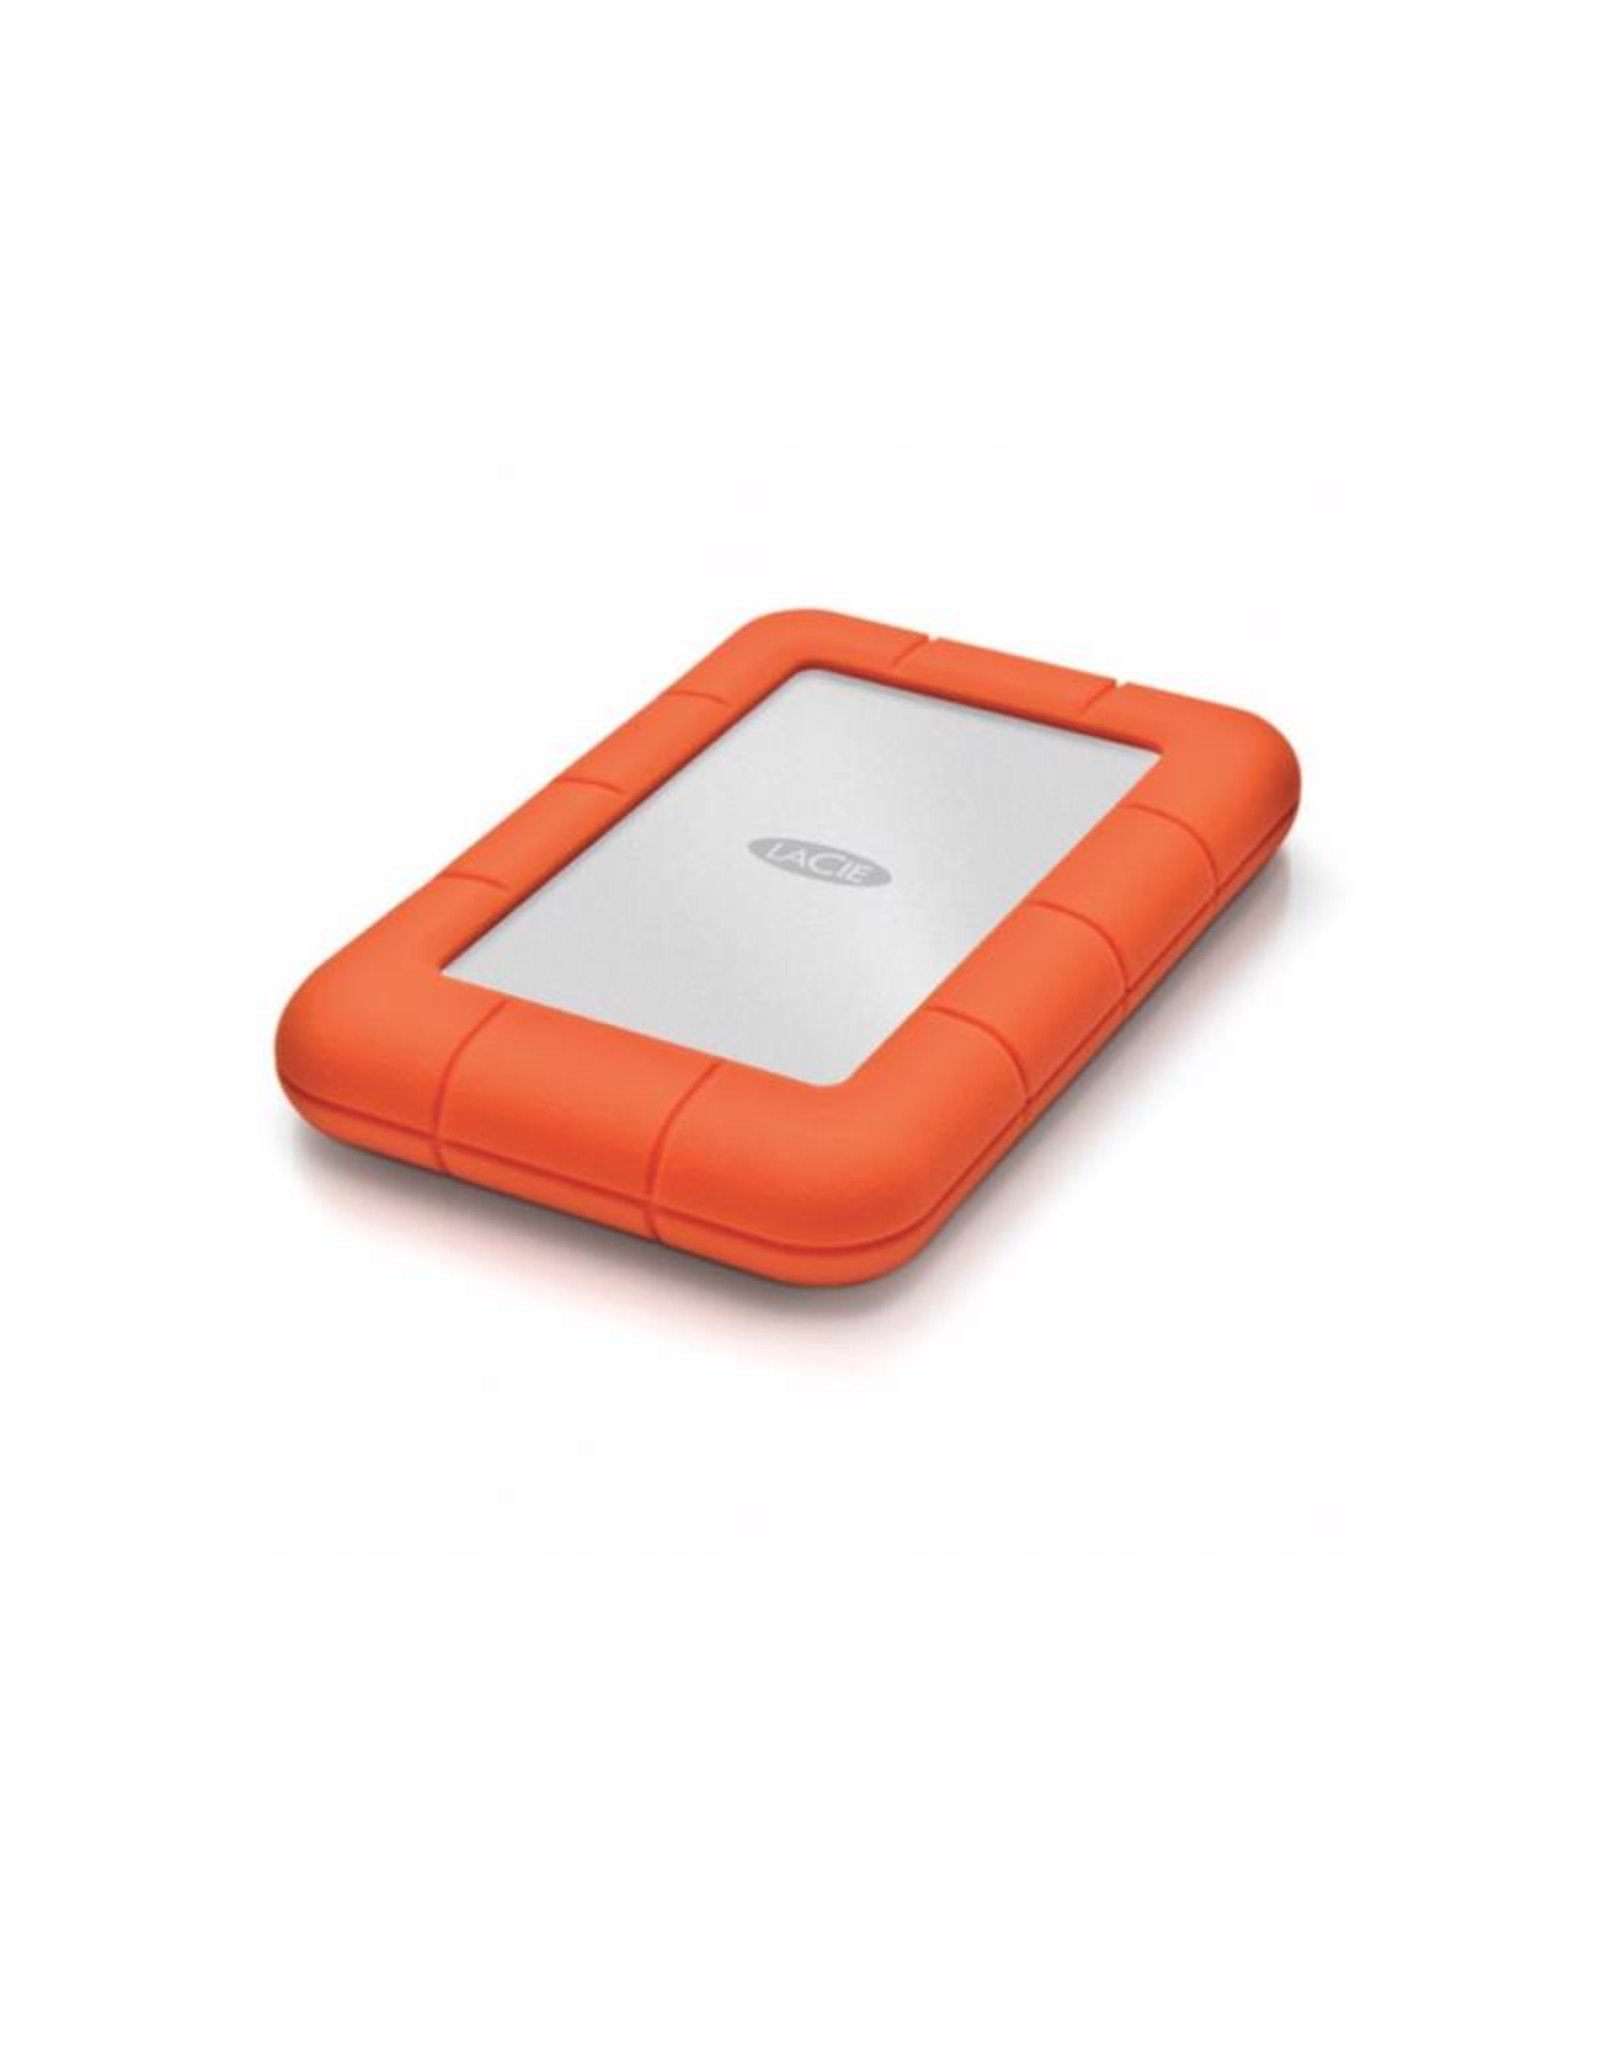 LACIE LACIE 1TB RUGGED MINI USB 3.0 DRIVE